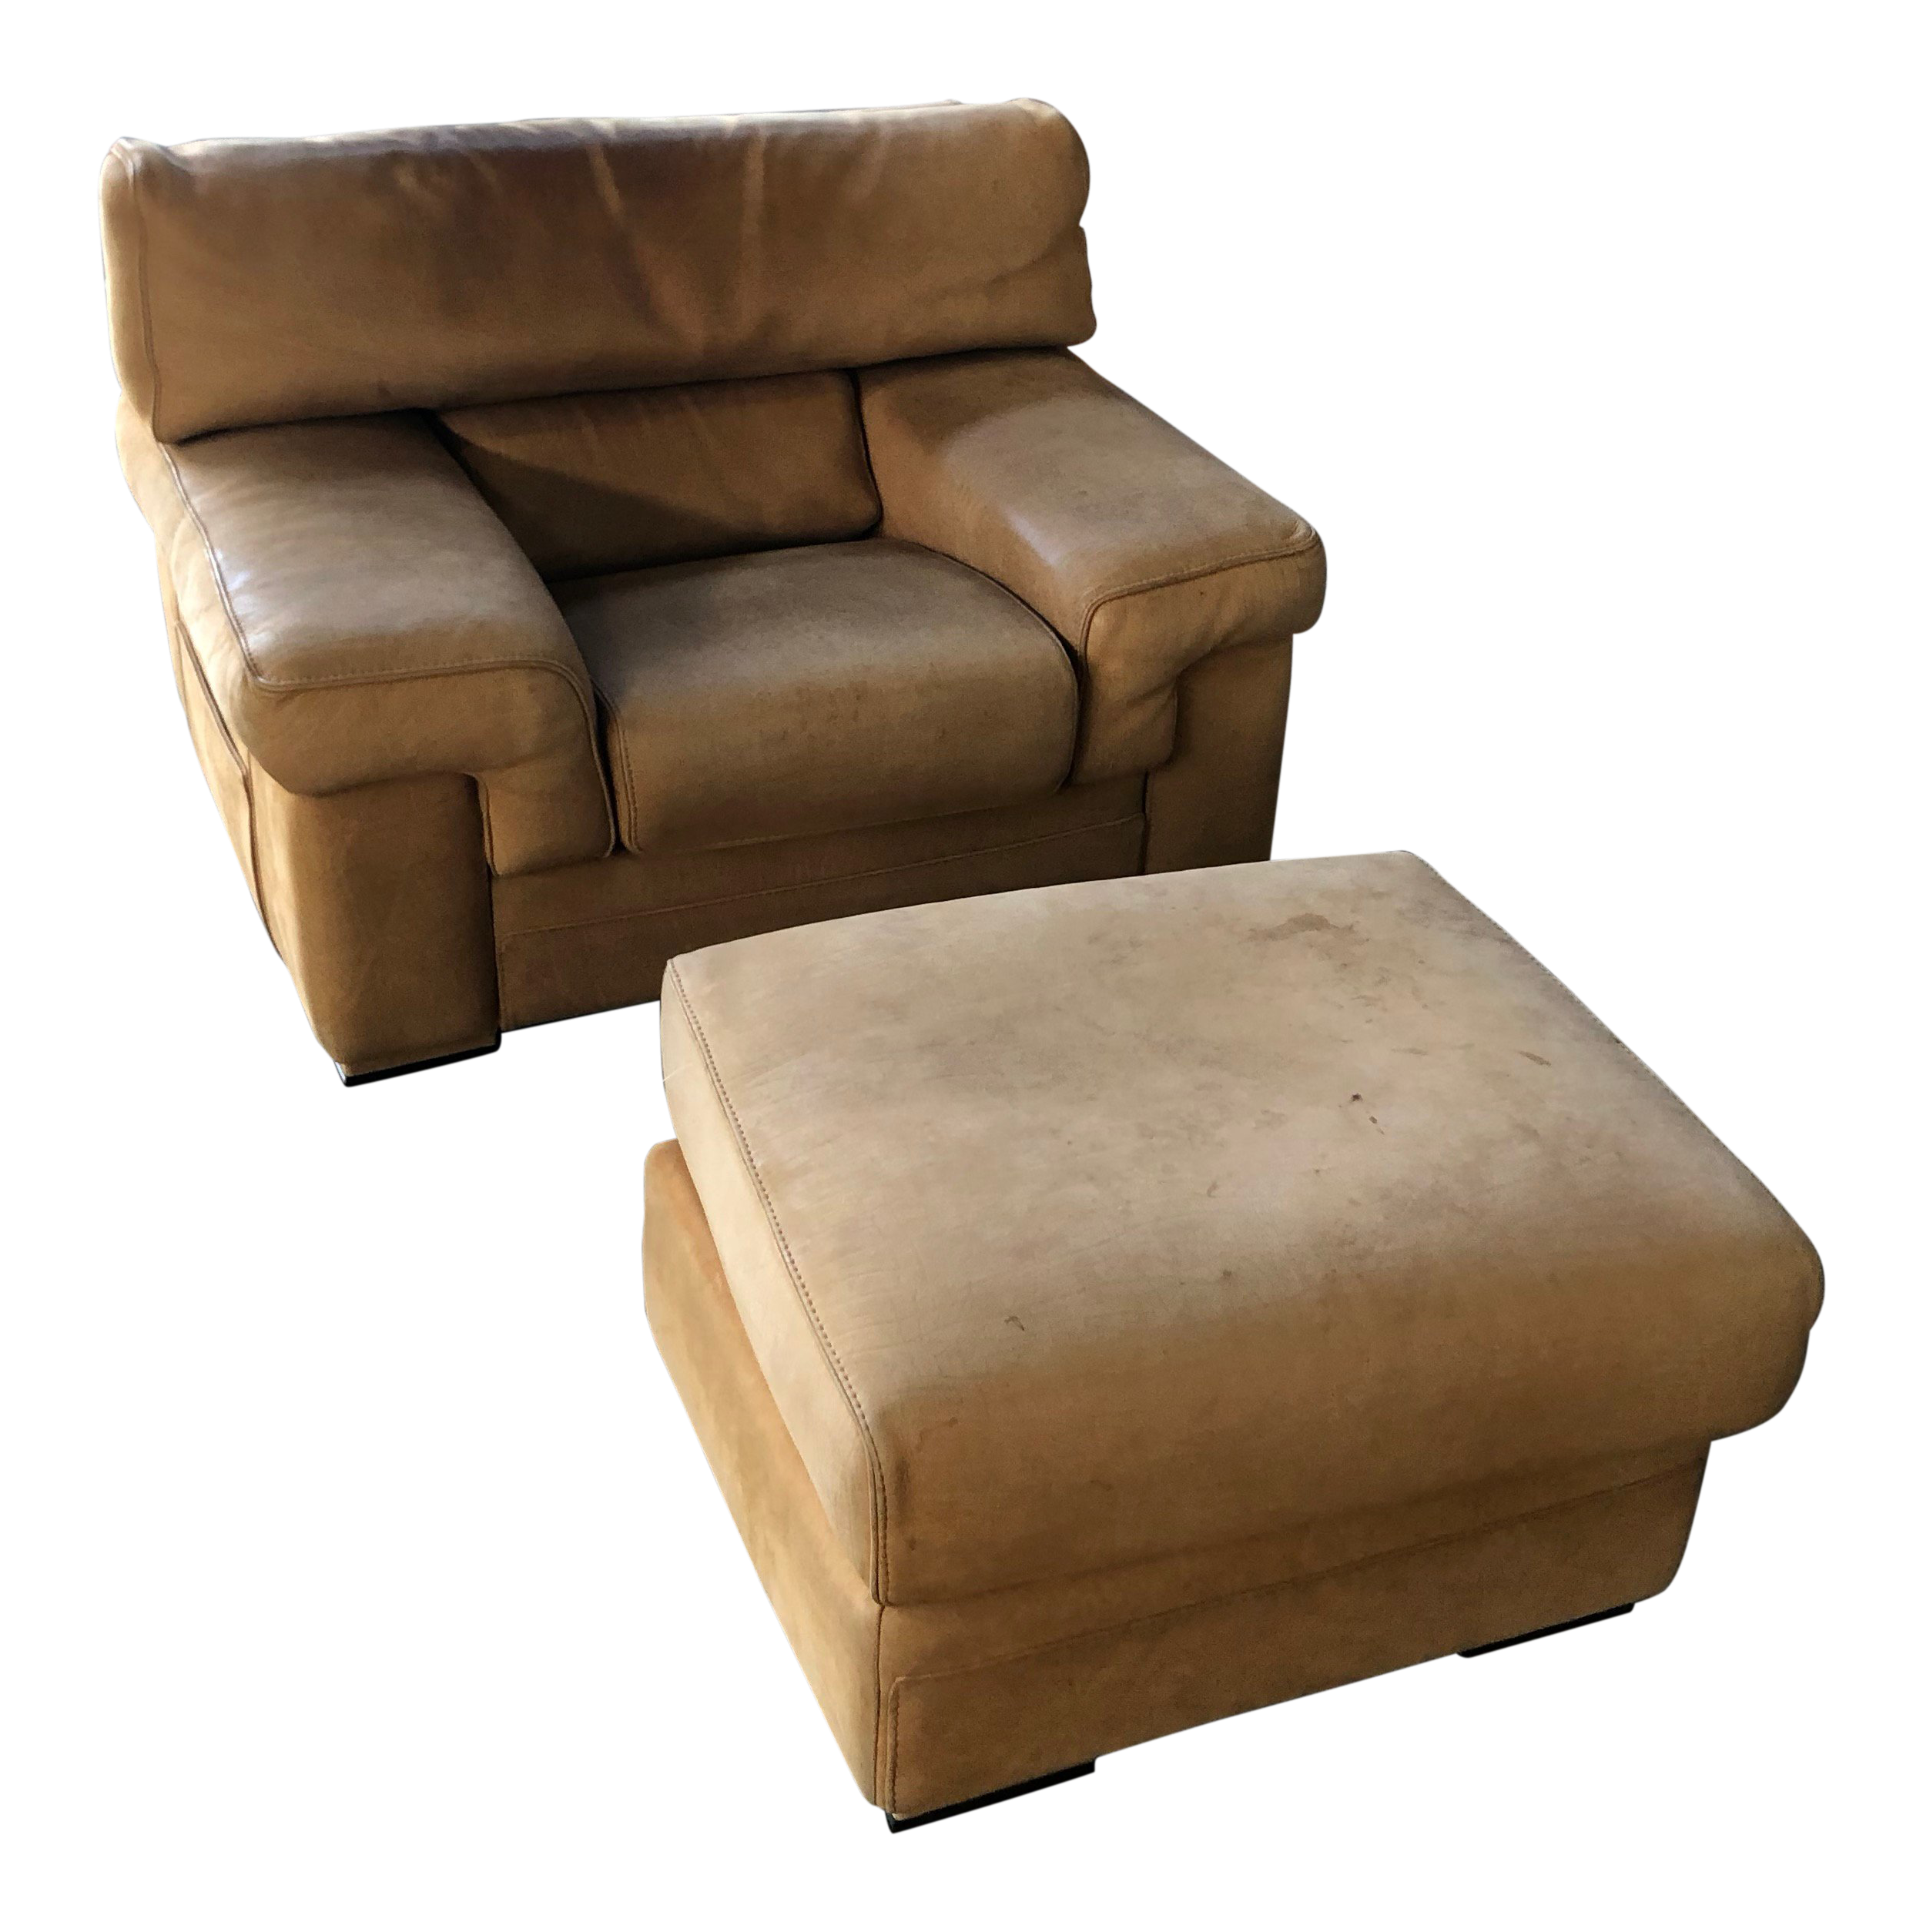 Roche Bobois Thick Leather (Nubuck) Chair And Ottoman For Sale